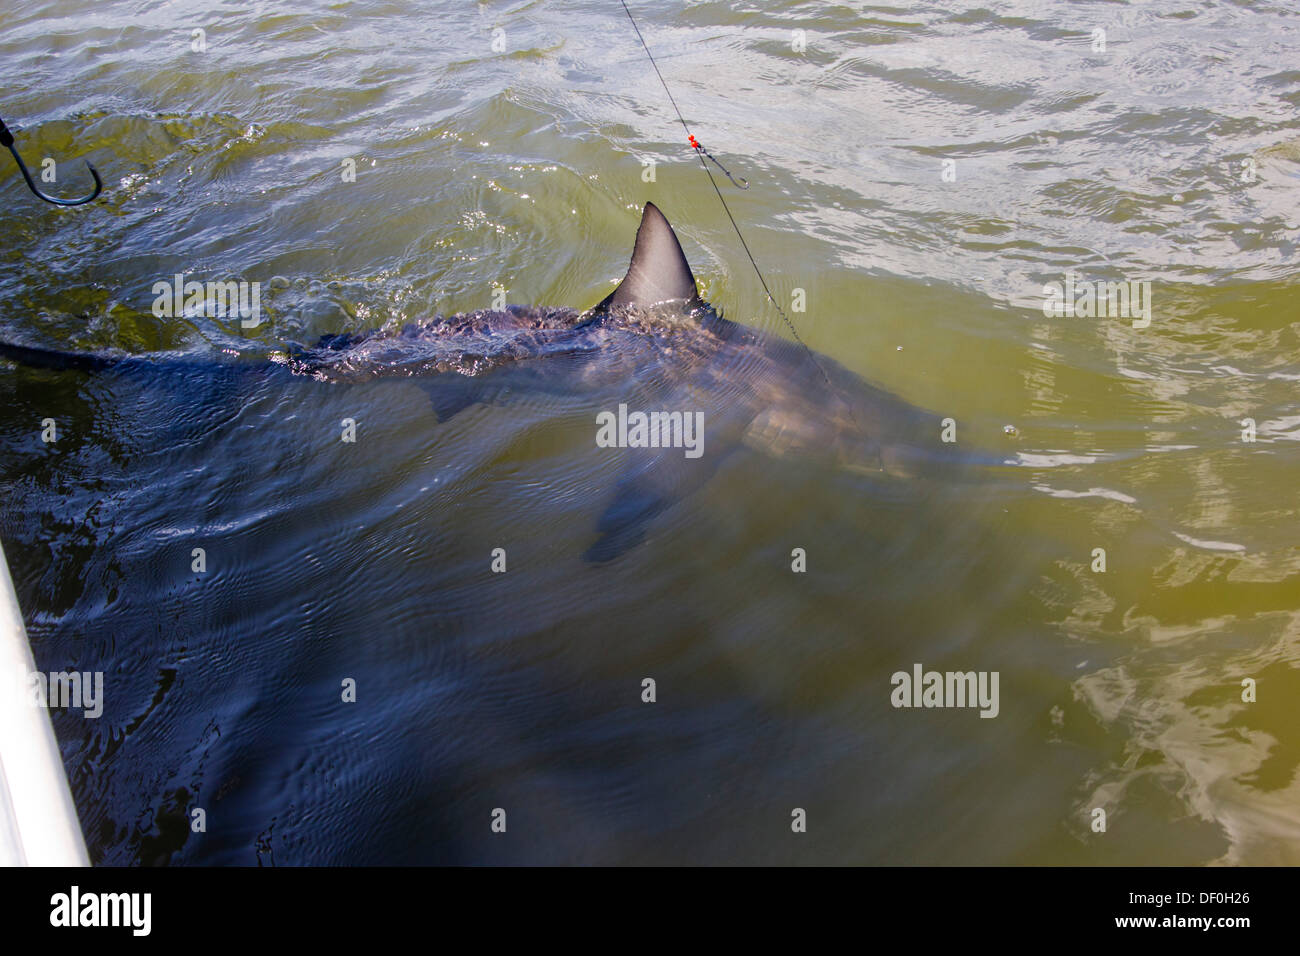 shark fishing - Gulf of Mexico - Stock Image